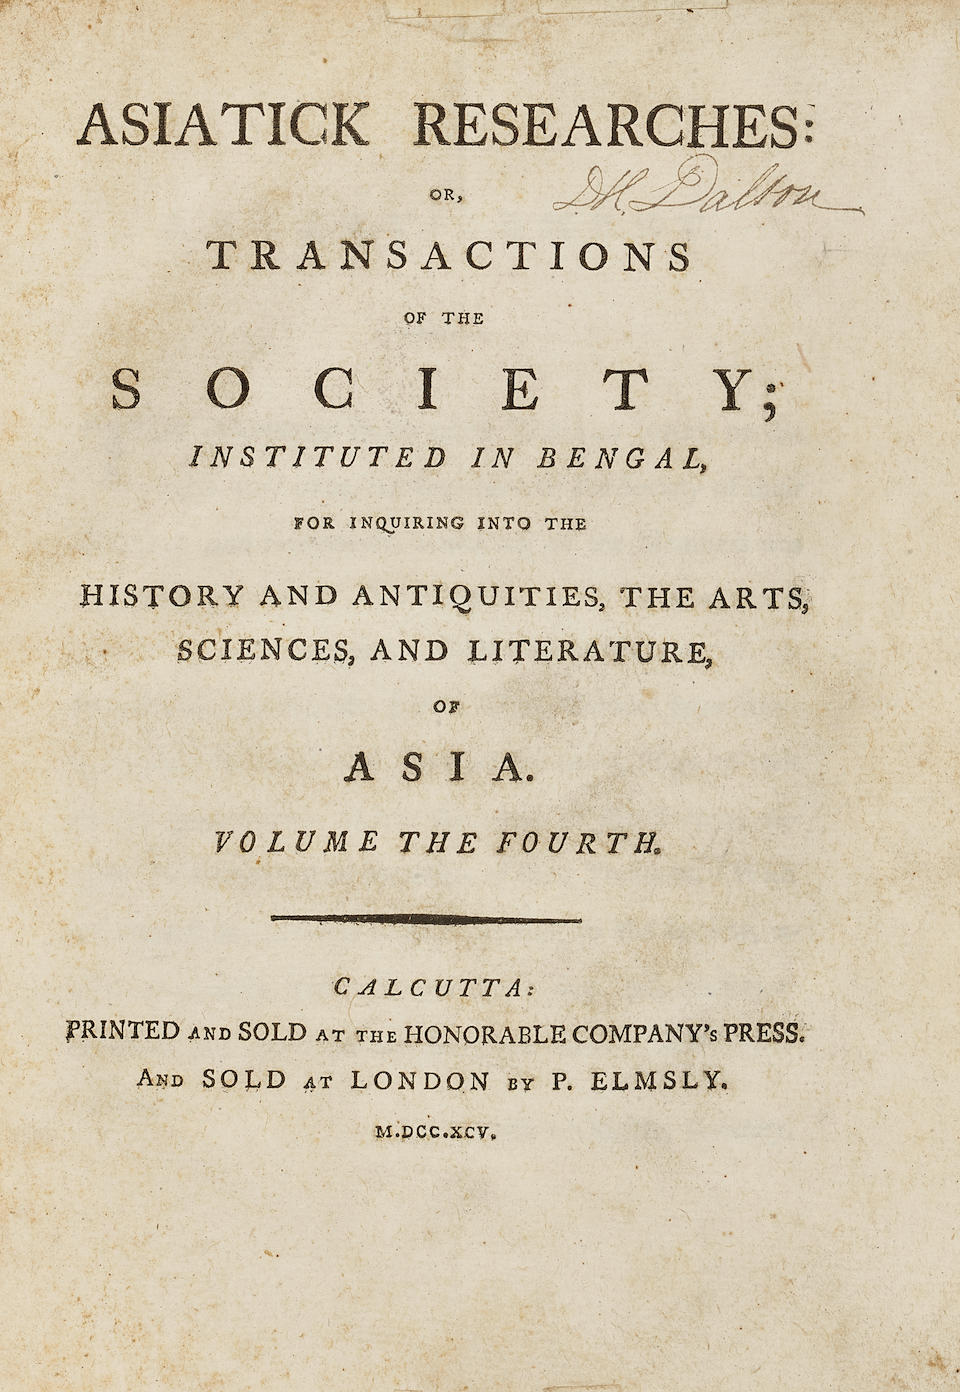 Asiatic Society of Bengal. Asiatick Researches: Or, Transactions of the Society, Instituted in Bengal. Calcutta: Manuel Cantopher, 1788-95.